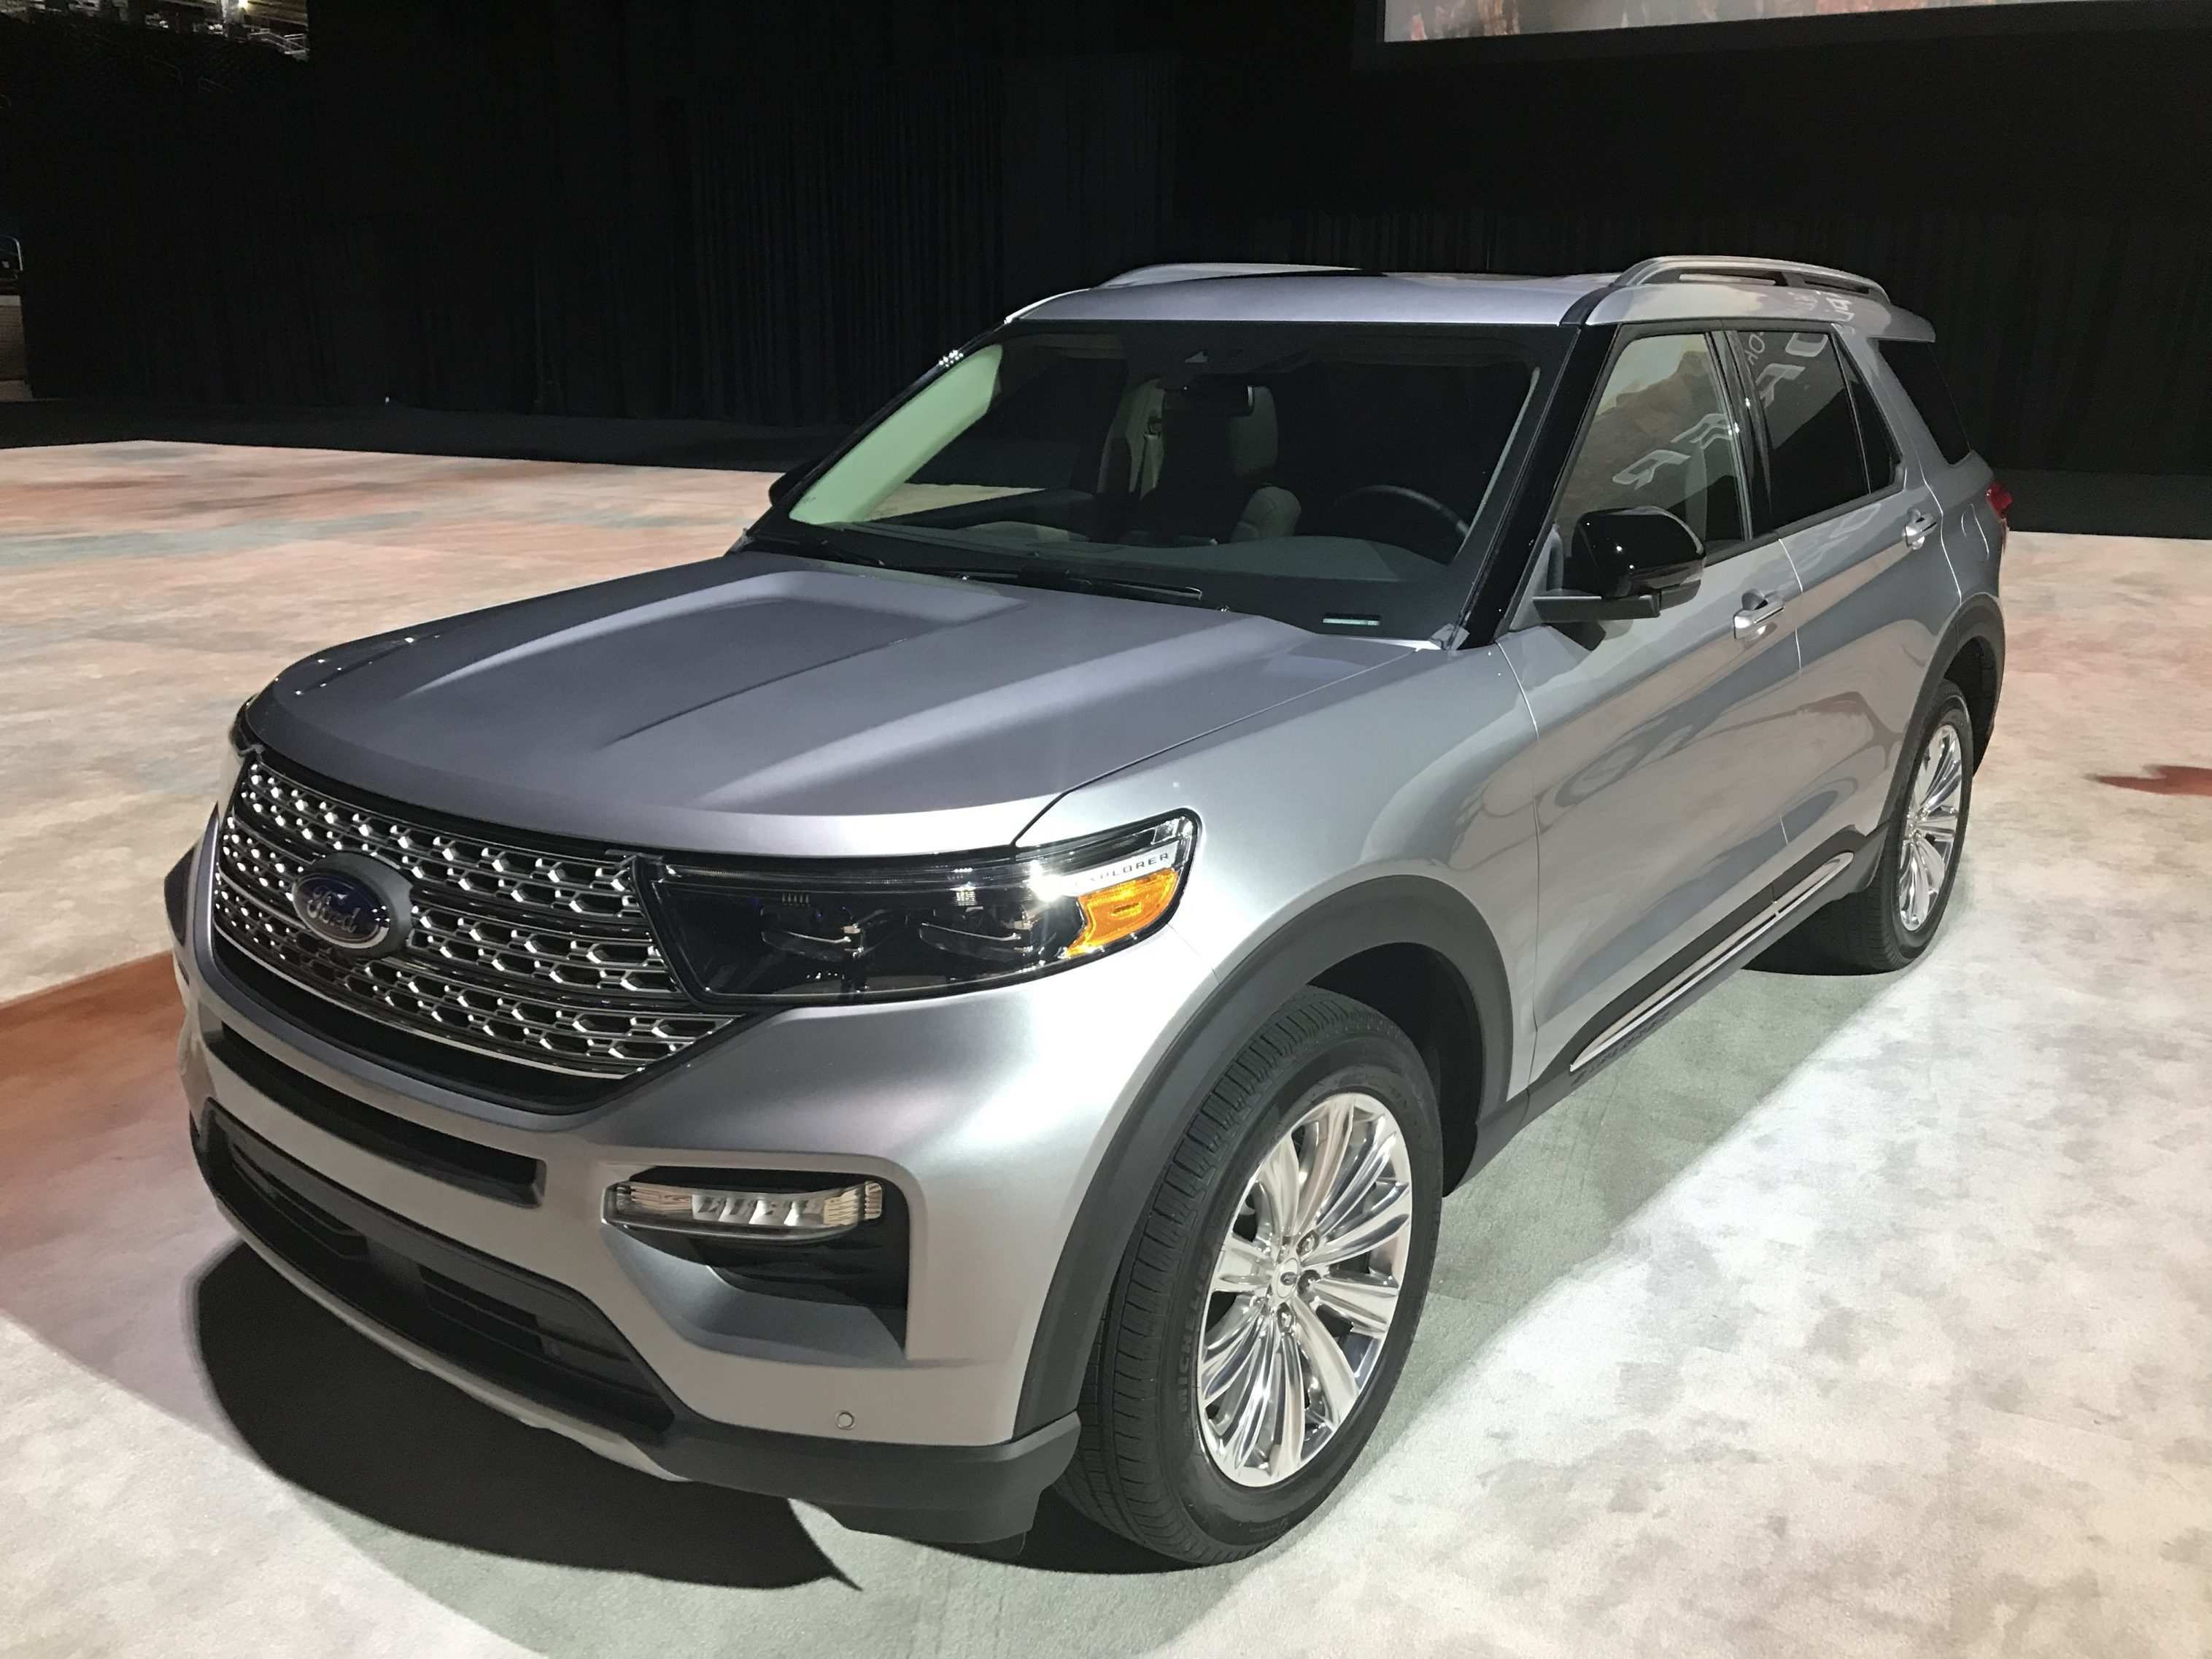 91 All New 2020 Ford Explorer Sports Performance